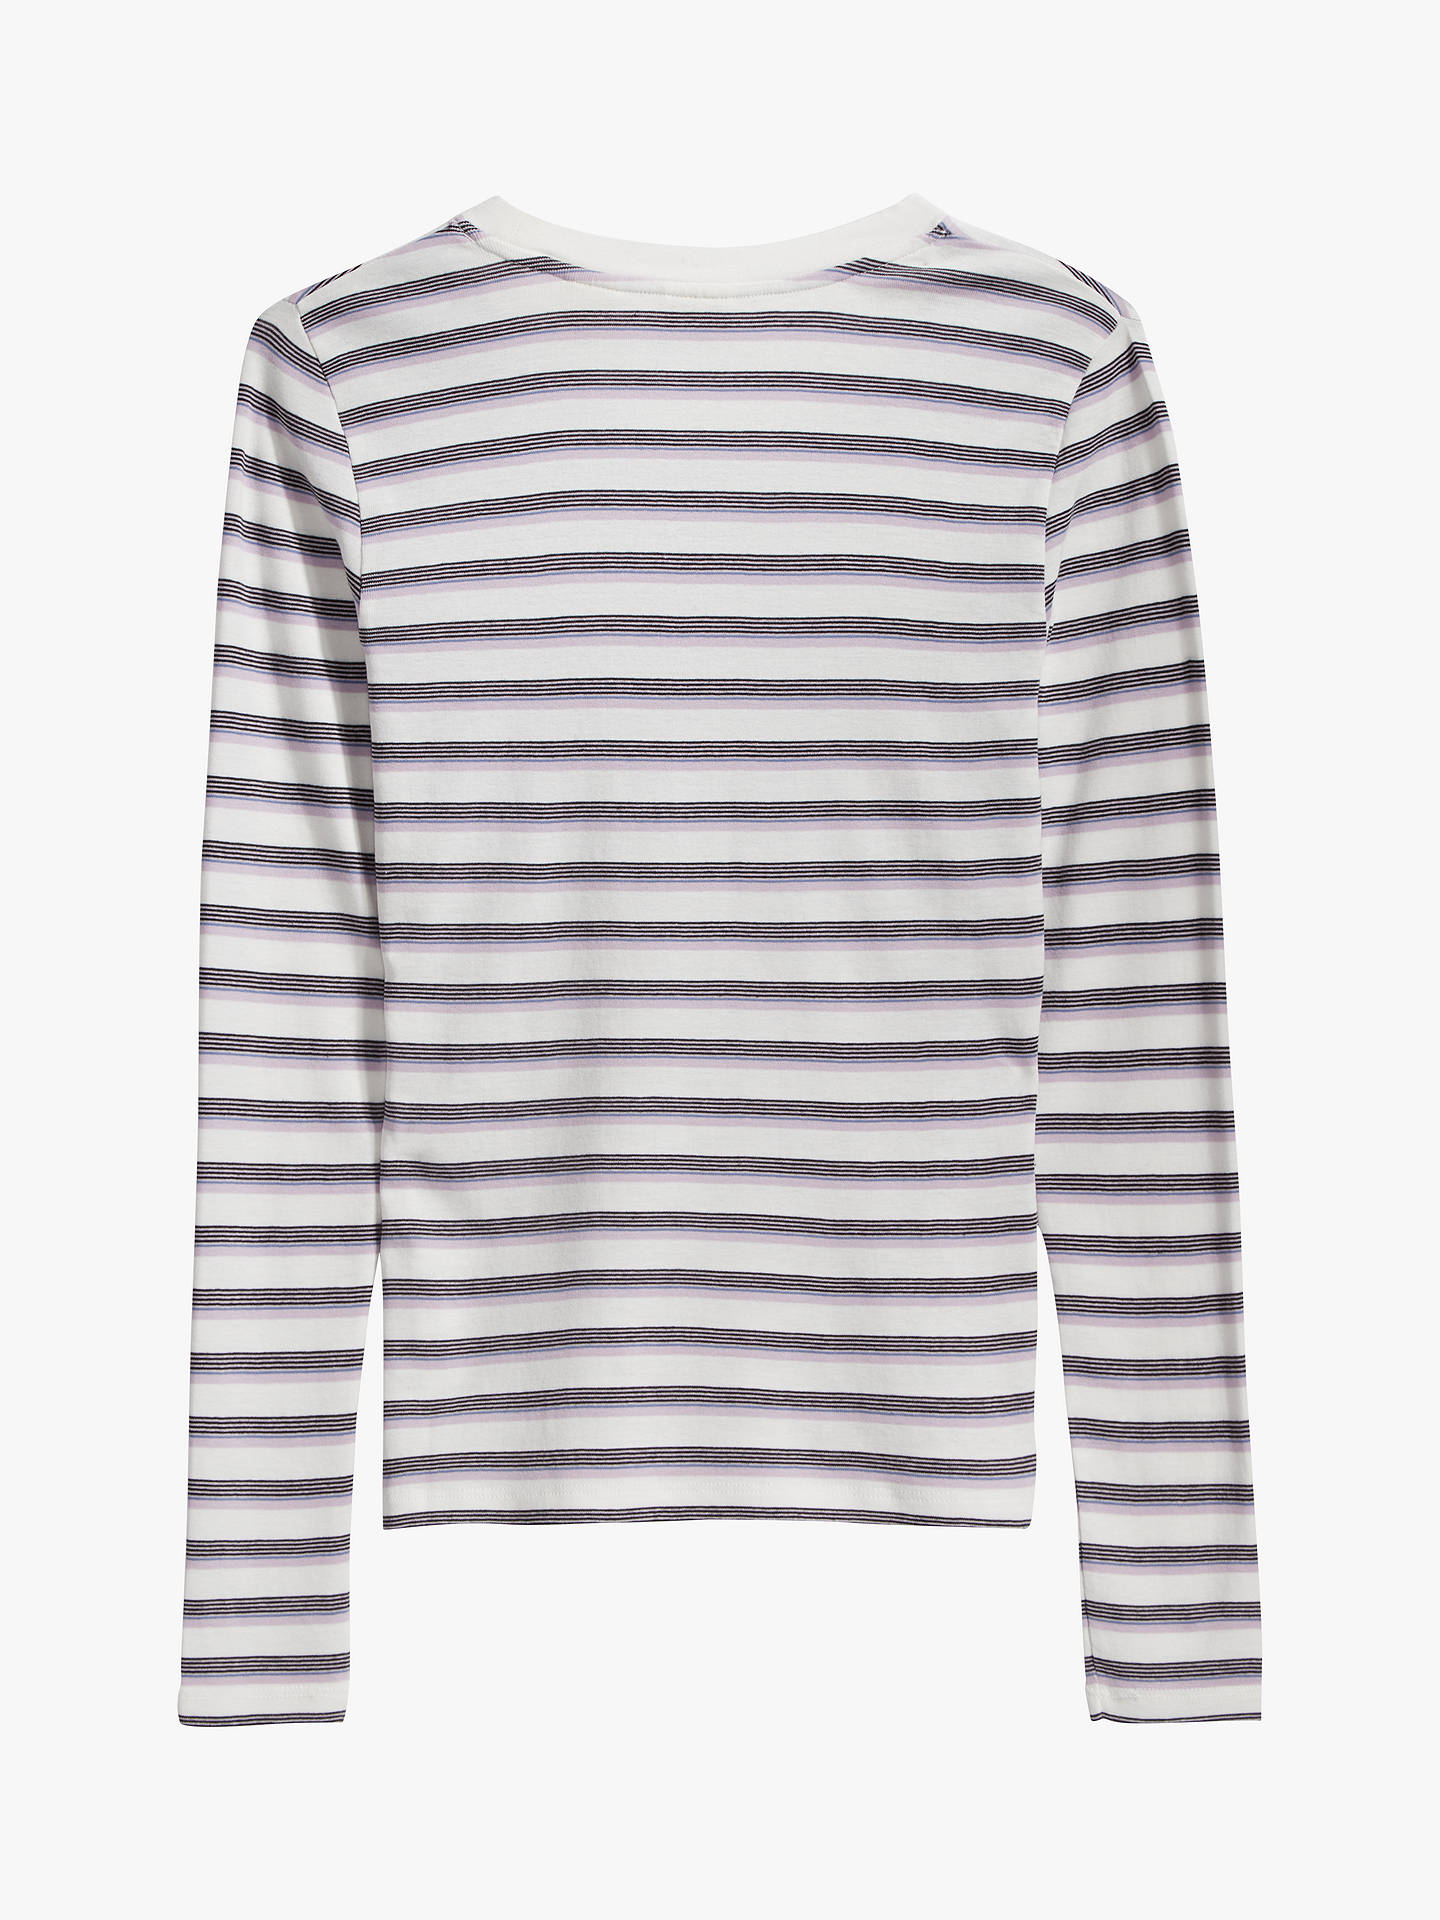 Buy Levi's Stripe Baby Long Sleeve T-Shirt, White/Multi, XS Online at johnlewis.com